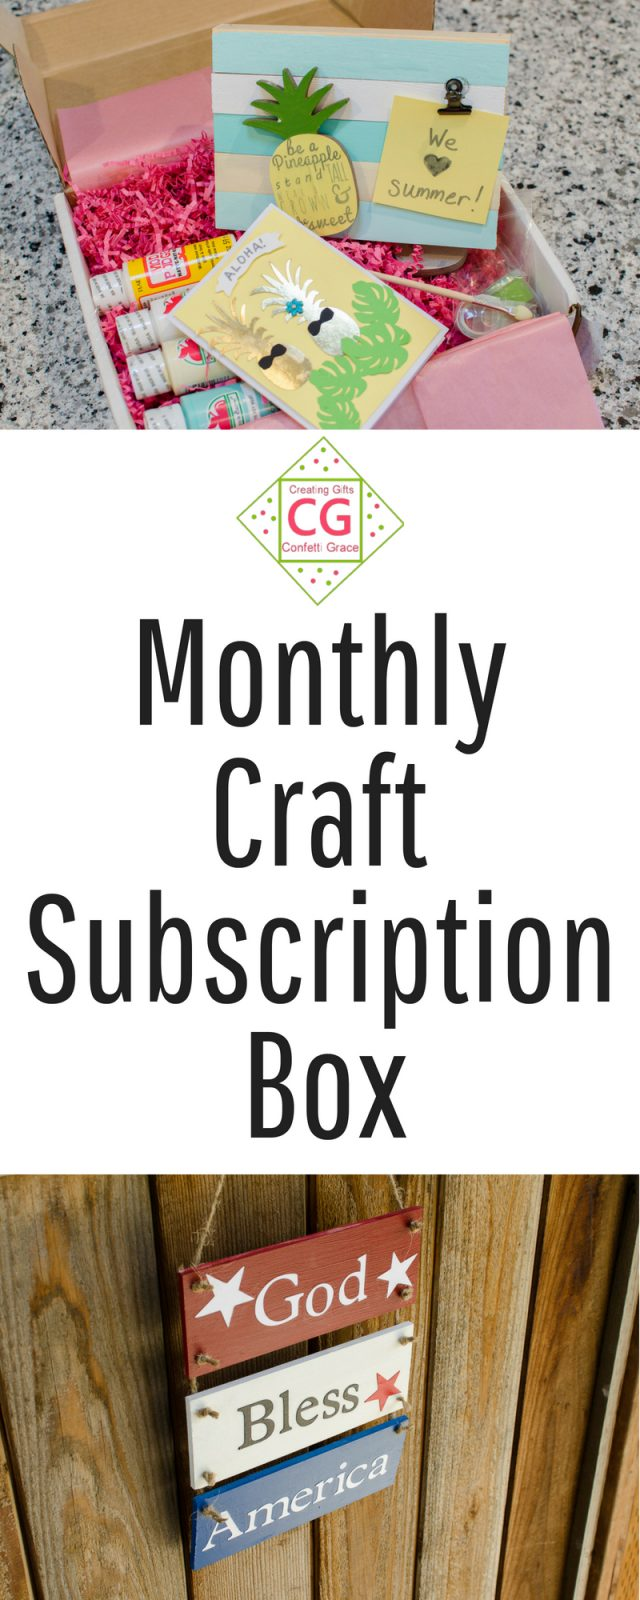 Confetti Grace Monthly Subscription Box #crafting